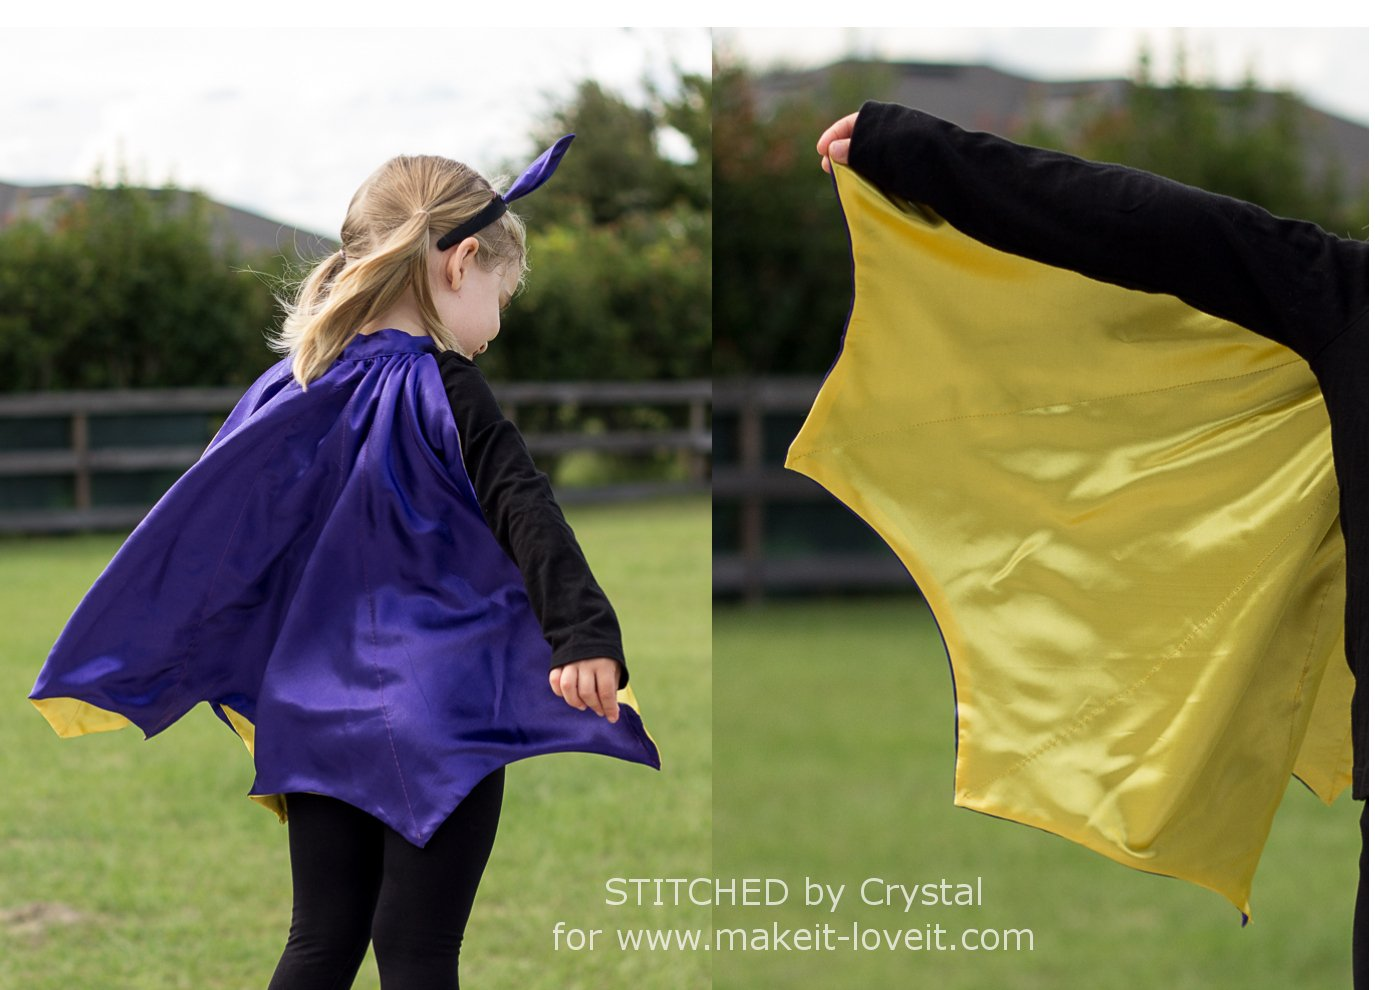 Sew A Reversible Halloween Cape....Perfect for Bats, Witches, and Vampires! | via www.ashley1.mystagingwebsite.com